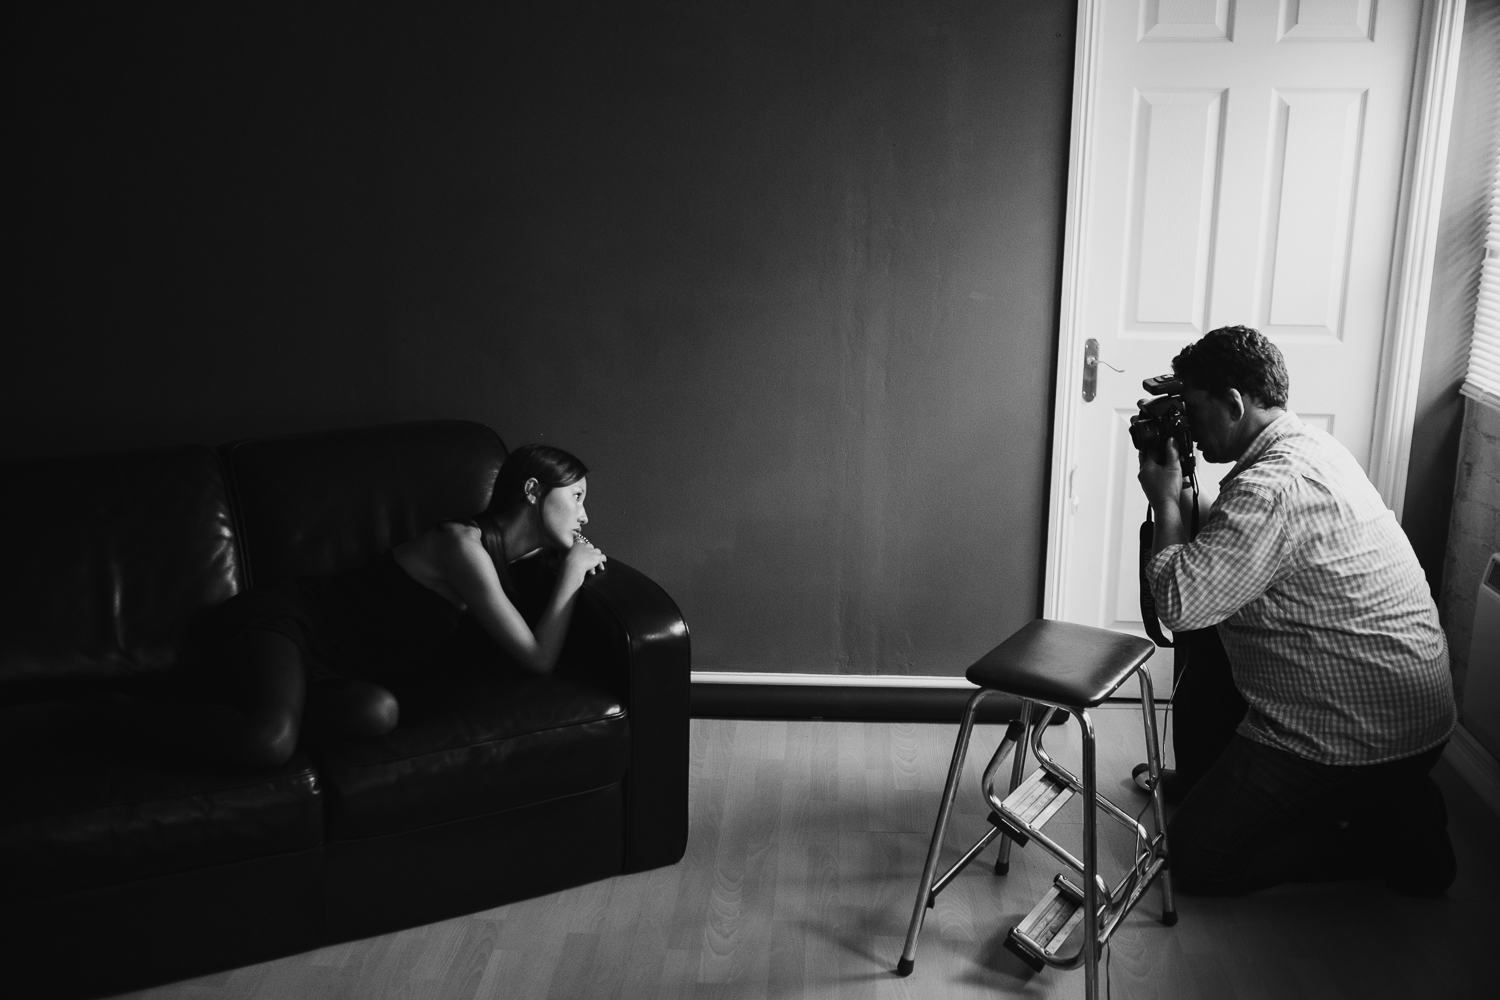 Steve working with model, Nao in the studio © Andrew Newson